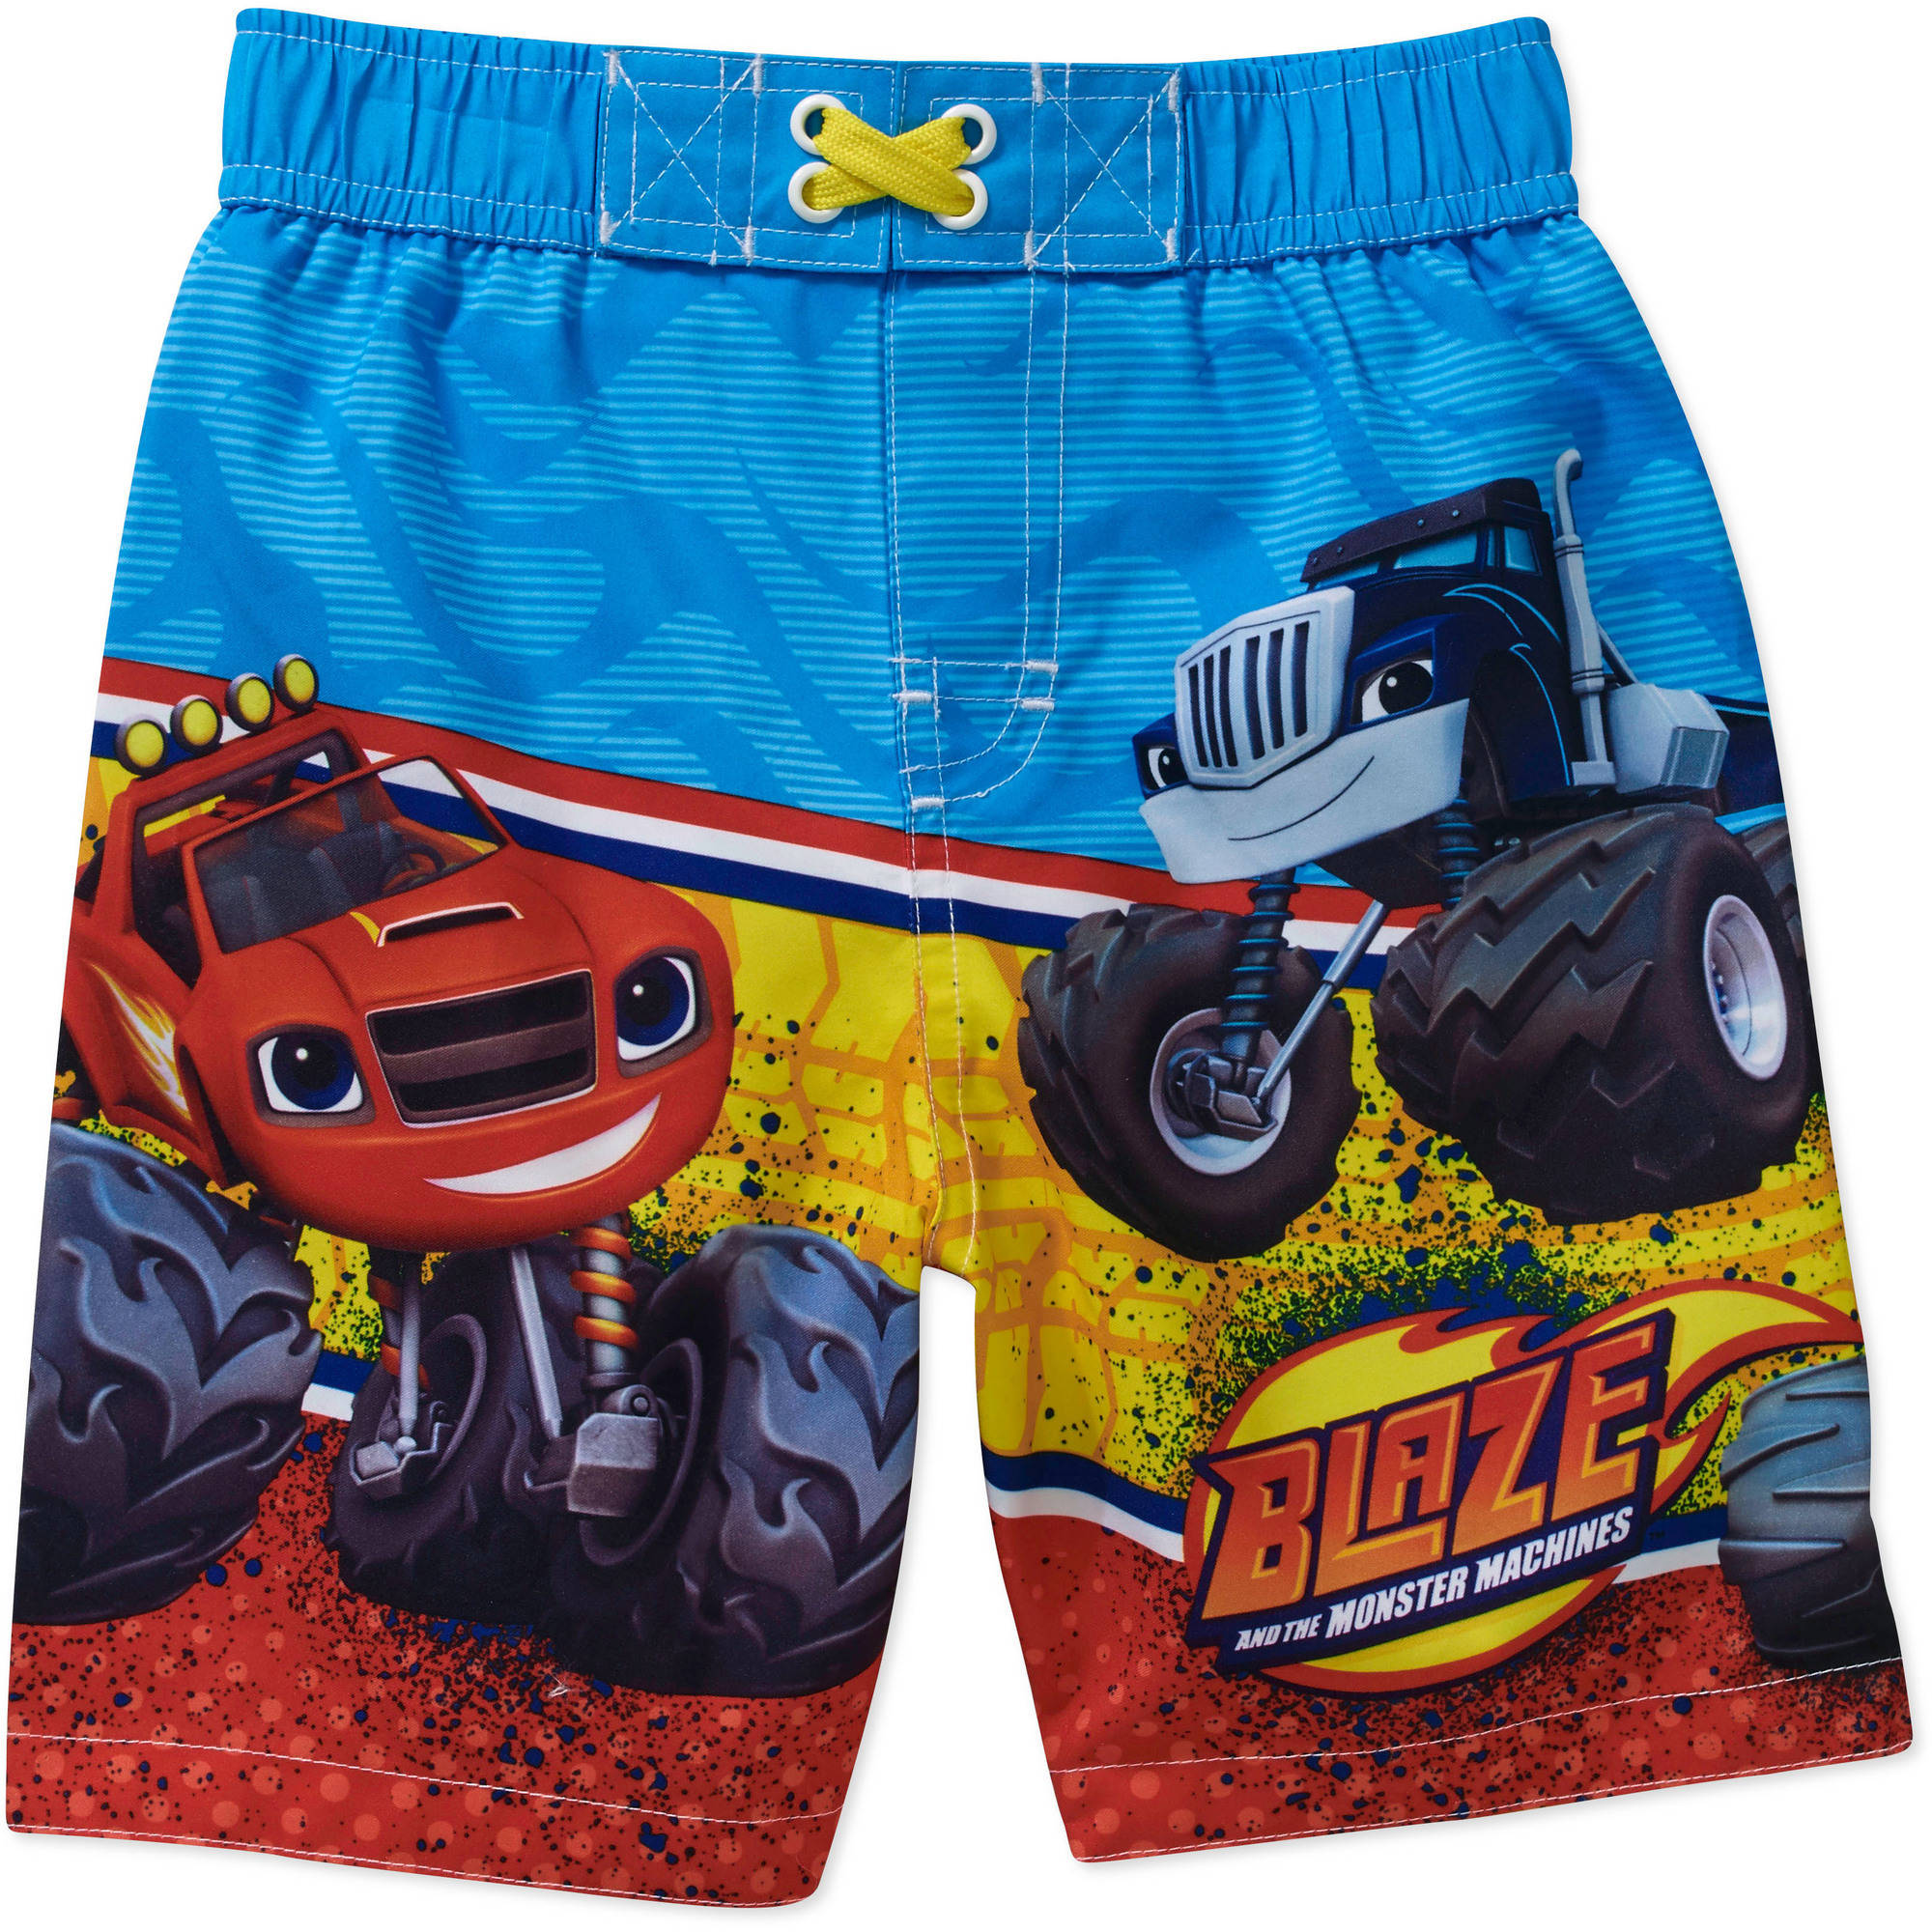 Nickelodeon Blaze and the Monster Machines Toddler Boy Swim Trunks